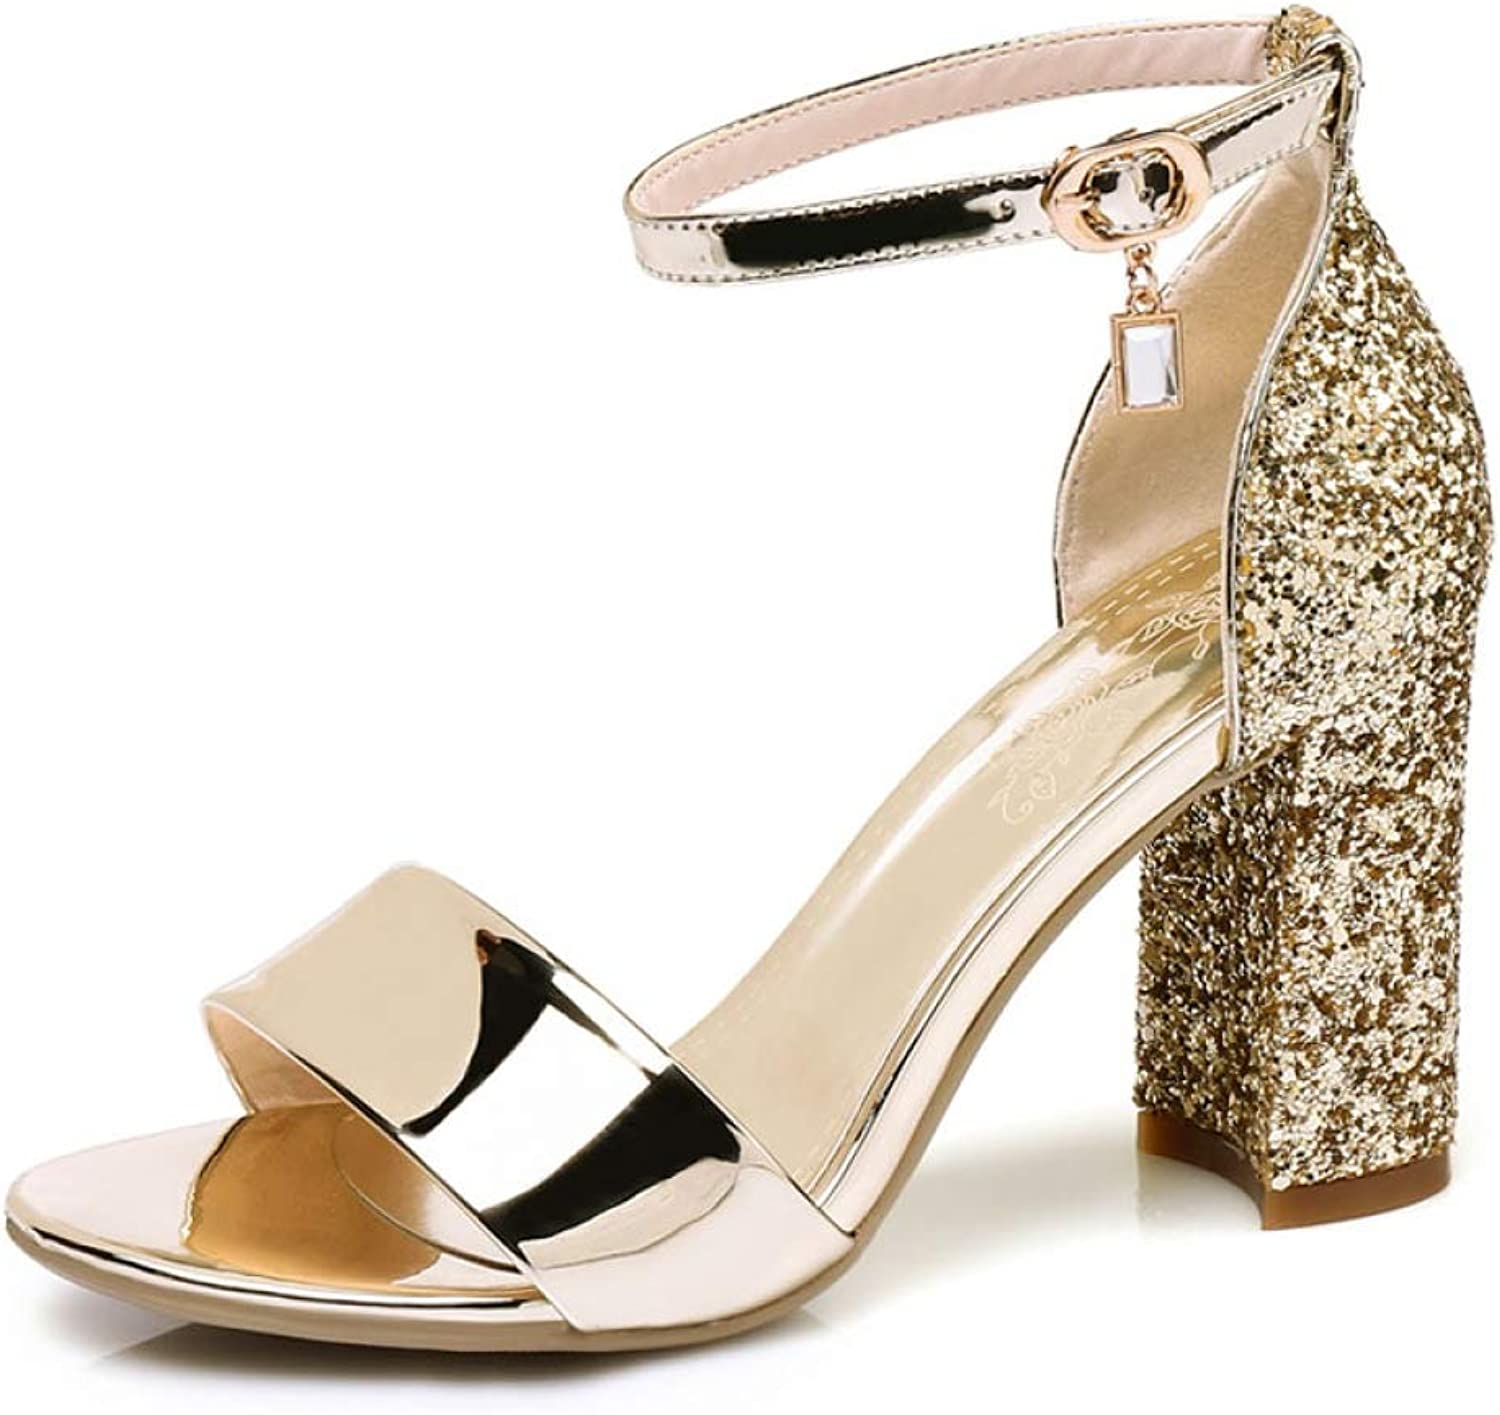 T-JULY Women's Fashion Bling Solid High Pumps Ankle Strap Ladies Sandals Open Toe Female's Extreme High Heels Sandals